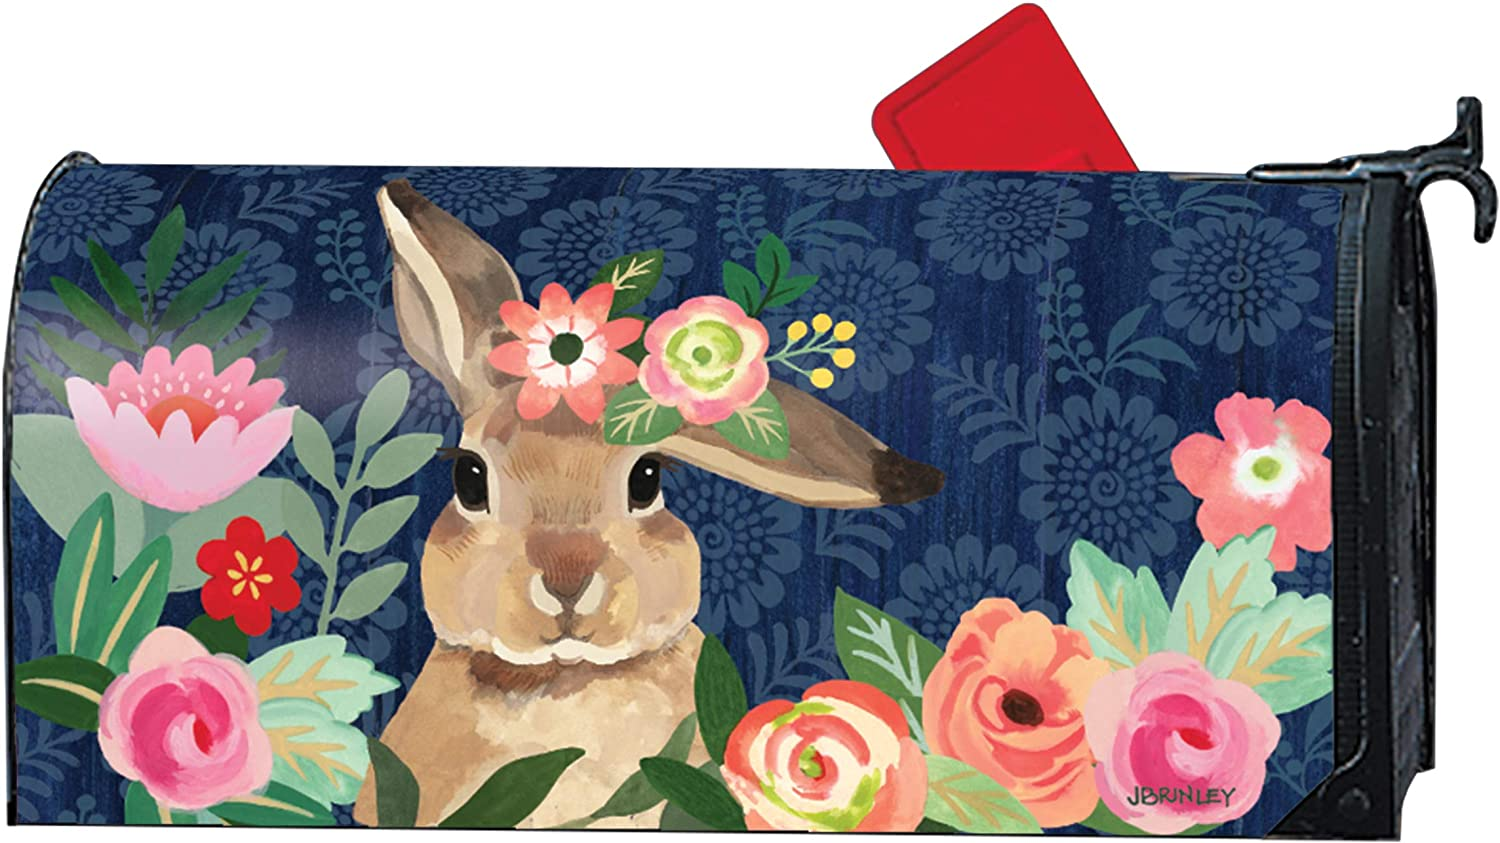 MailWraps Studio M Bunny Bliss Decorative, The Original Magnetic Mailbox Cover, Made in USA, Superior Weather Durability, Standard Size fits 6.5W x 19L Inch Mailbox